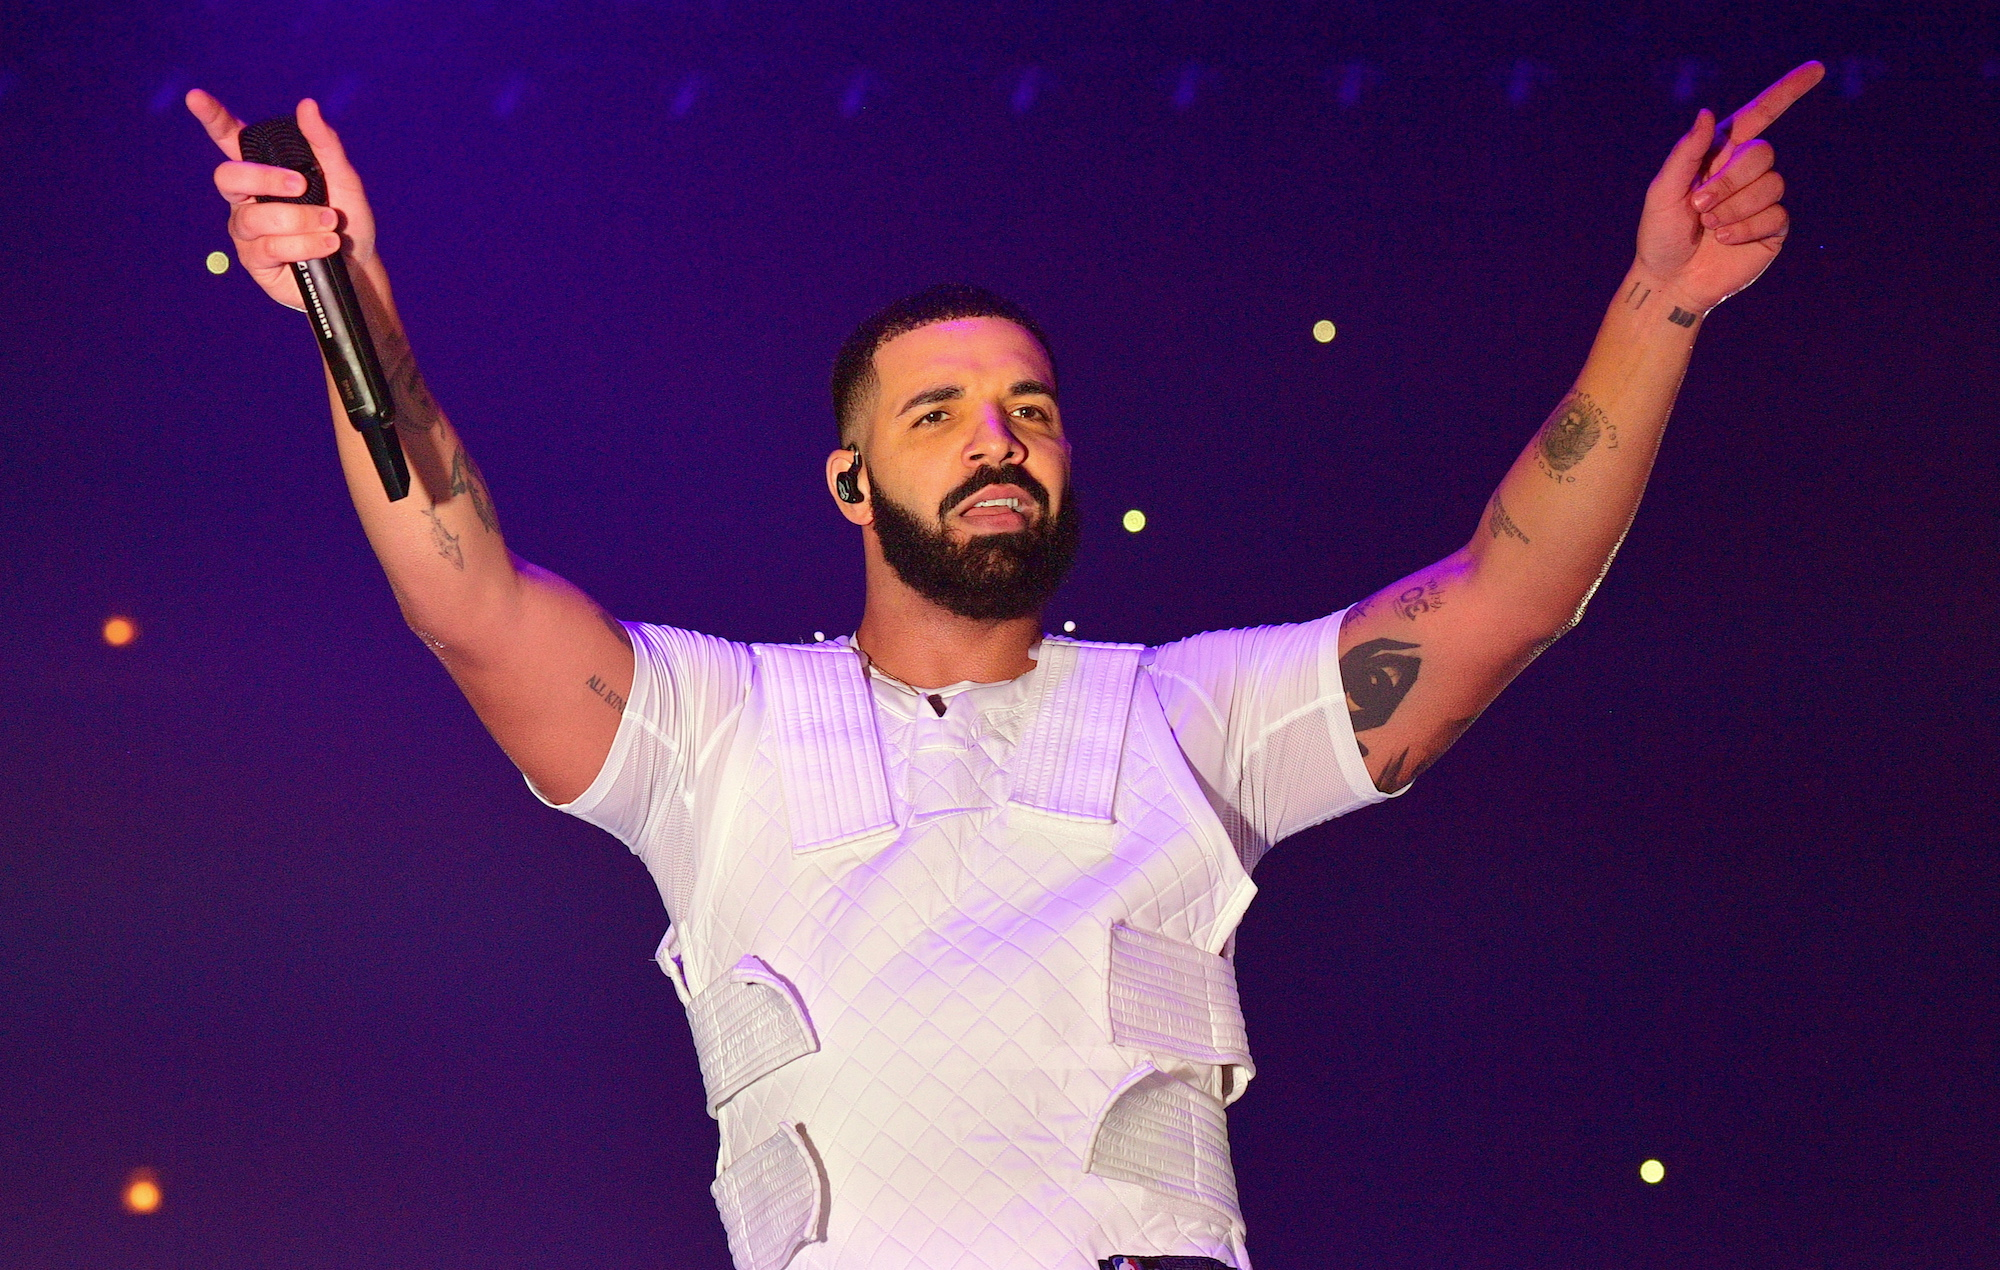 Drake teases 'More Life Growth Co.' with free flowers in Toronto